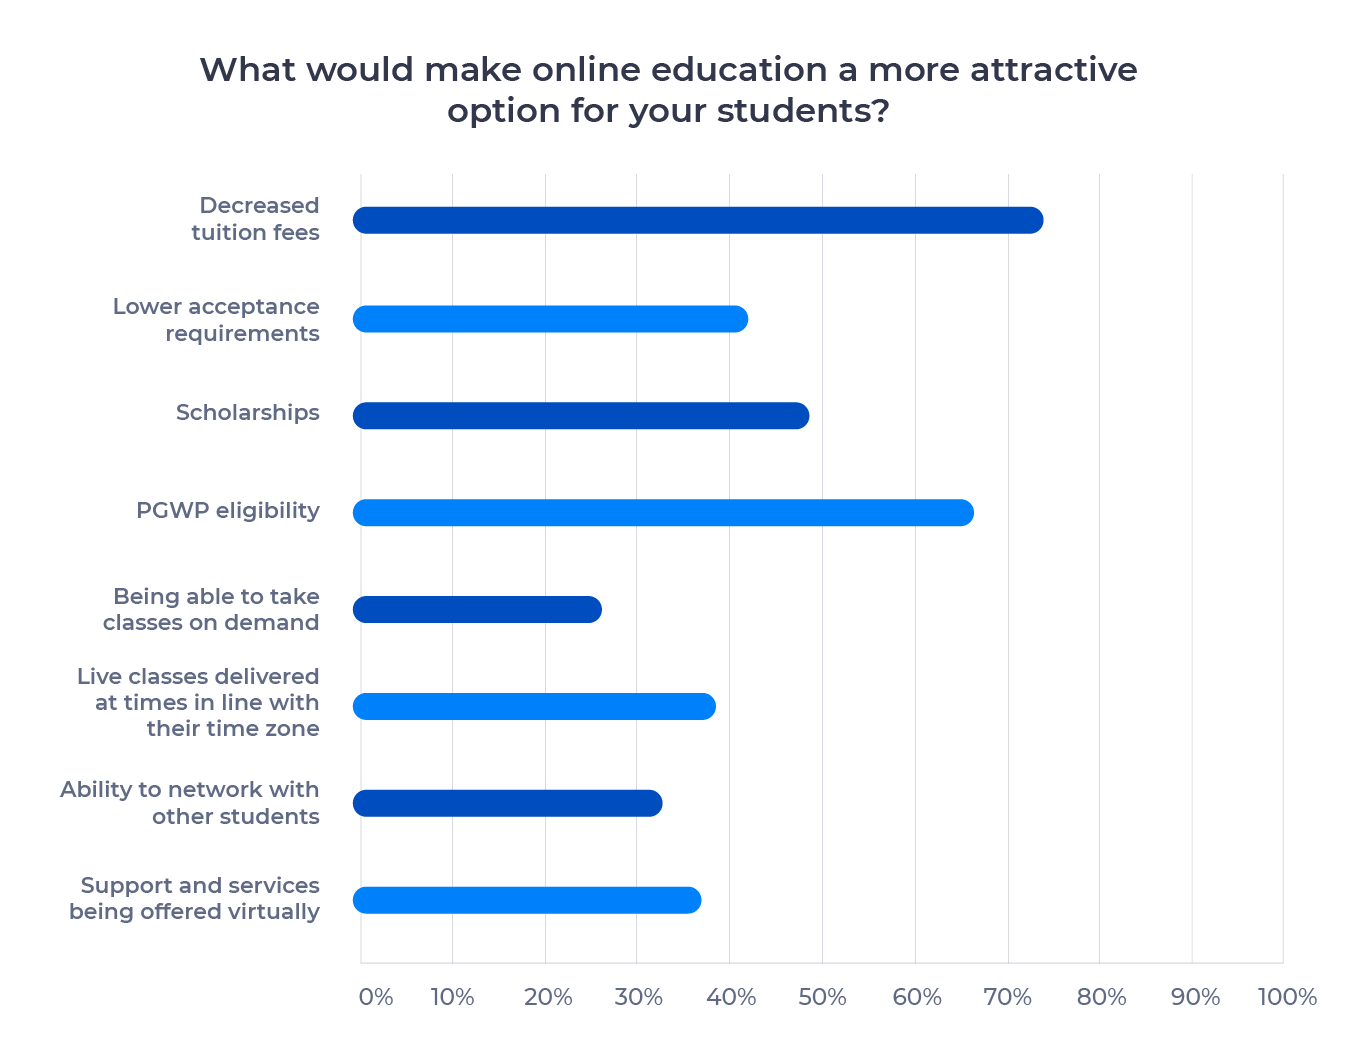 Bar chart showing ways to make online education more attractive for international students. Examined in detail below.